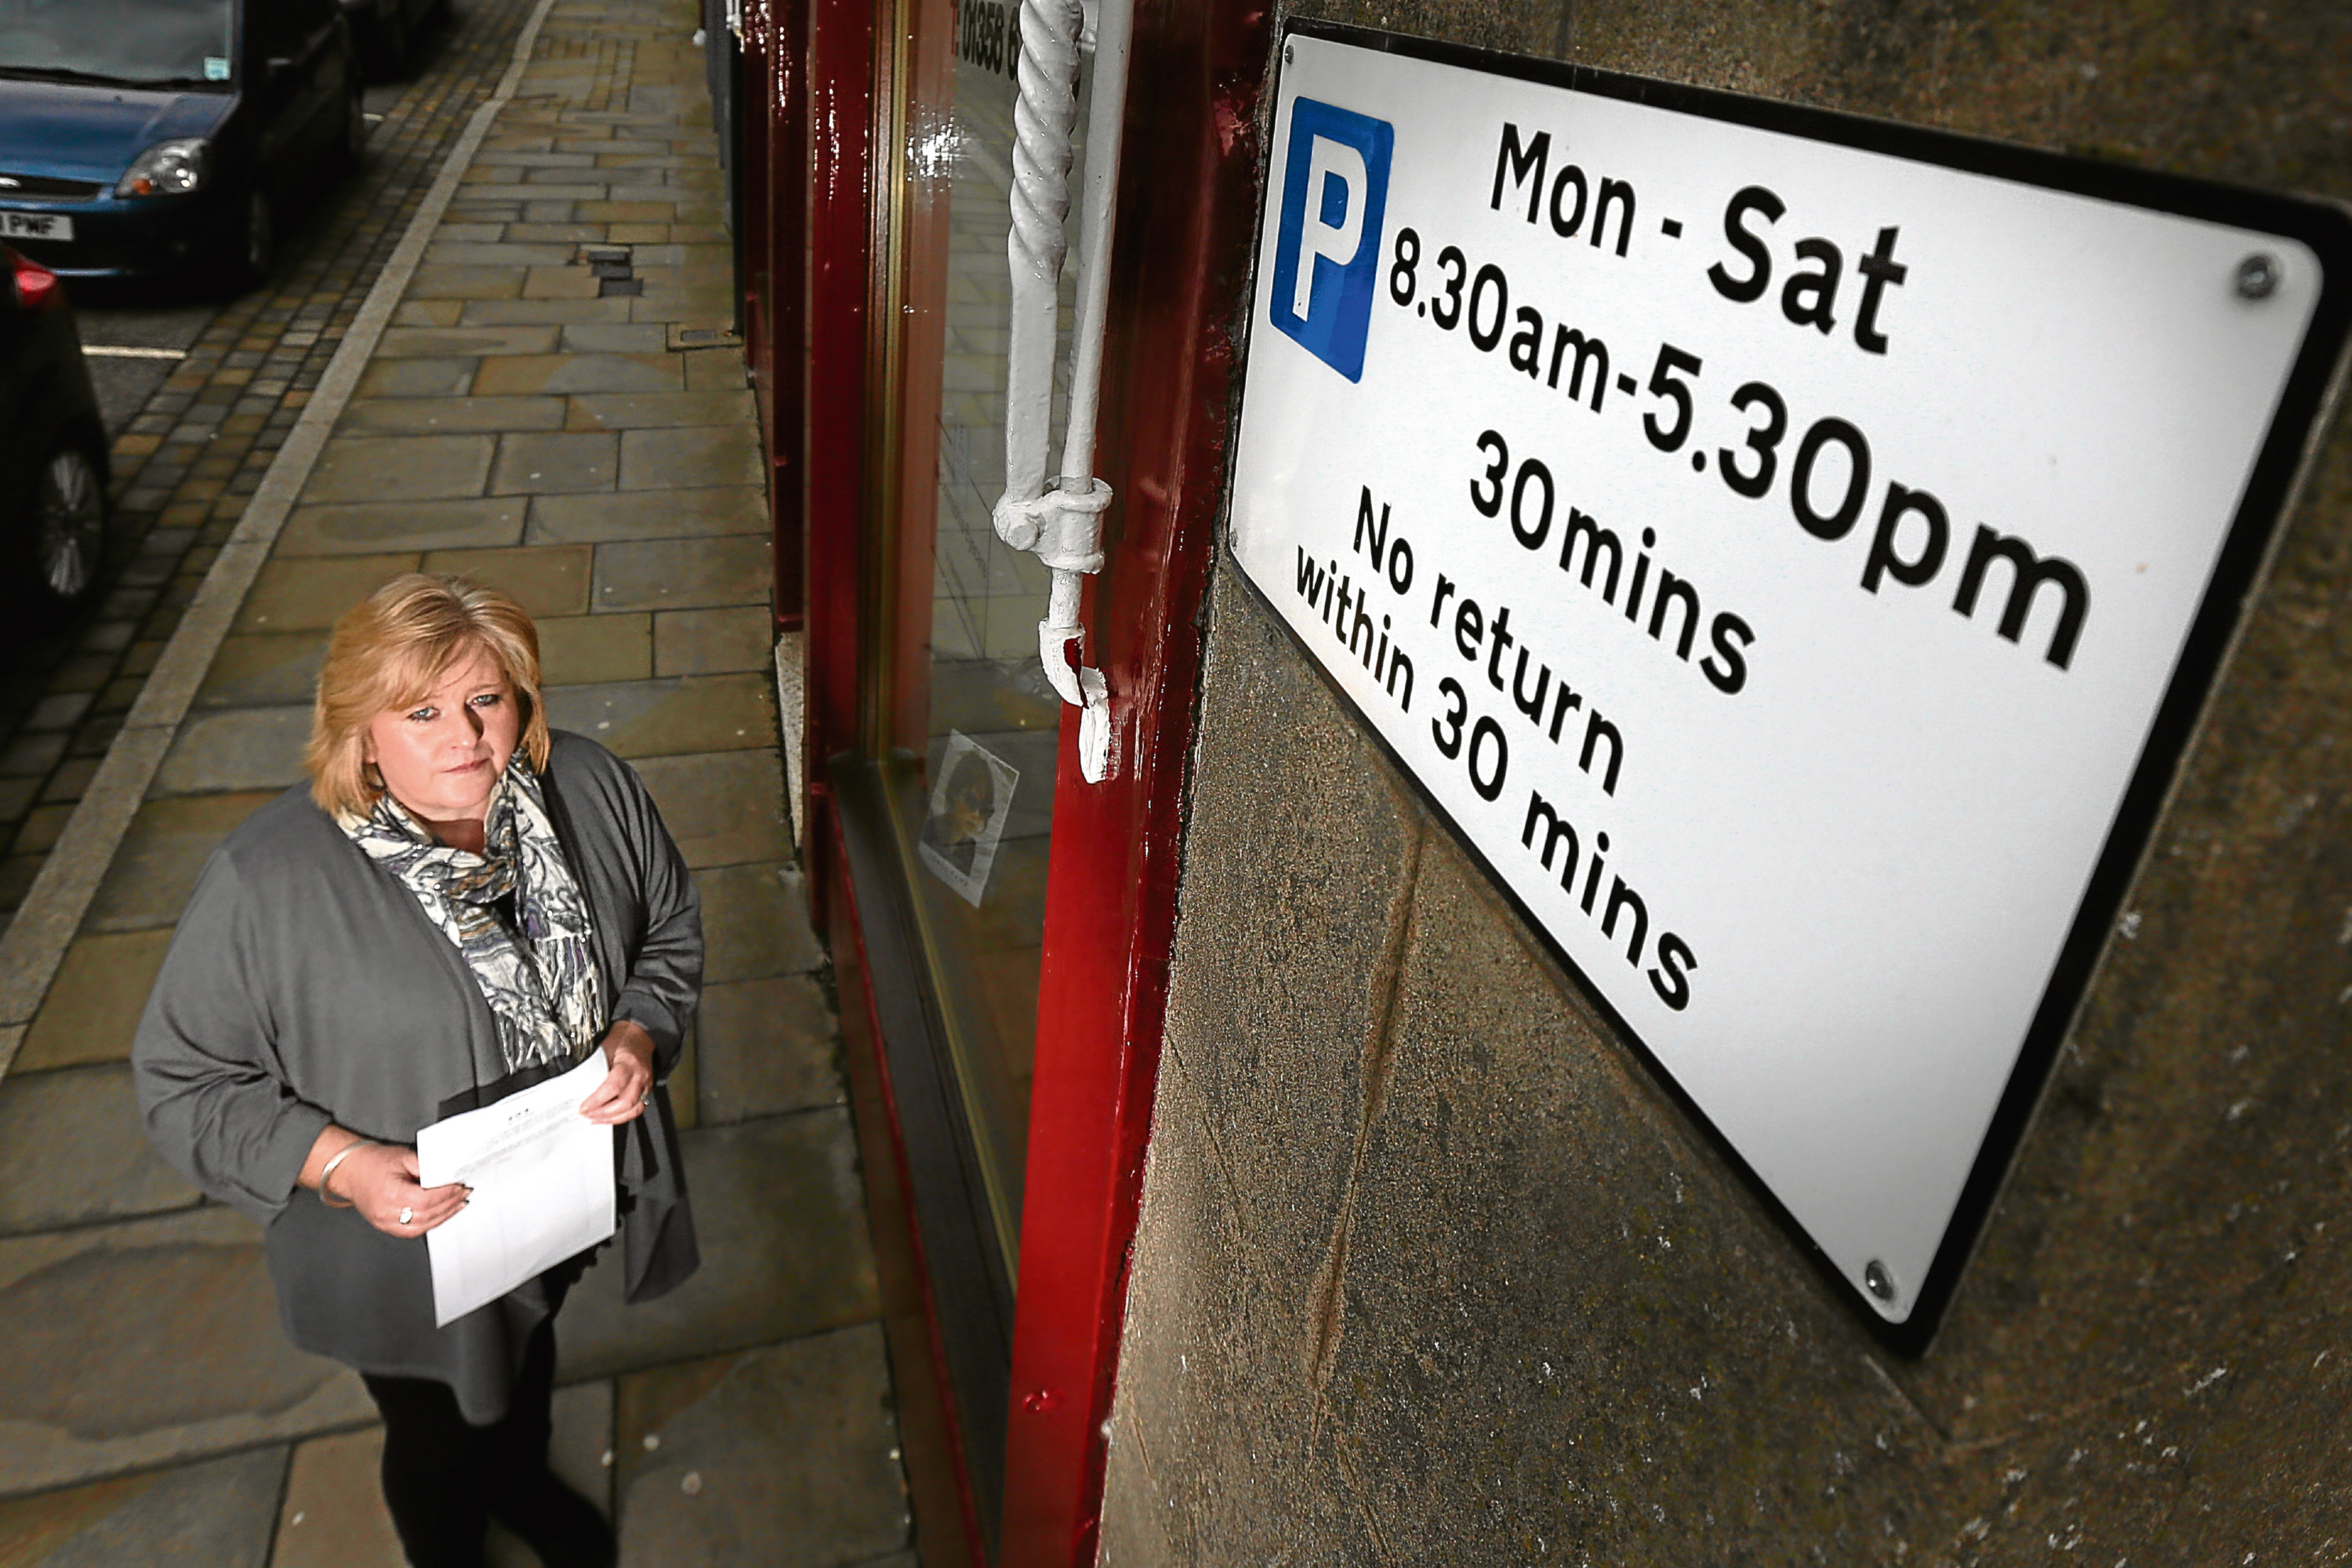 Courier News. Graham Brown story. CR0000245 A petition launched by Brechin woman Jill Scott gathers pace against proposed Angus parking charges over fears burghs will become 'tumbleweed towns'. Pic shows; Jill Scott in Brechin High Street, with her petition against proposed parking charges. Wednesday, 28th March, 2018.